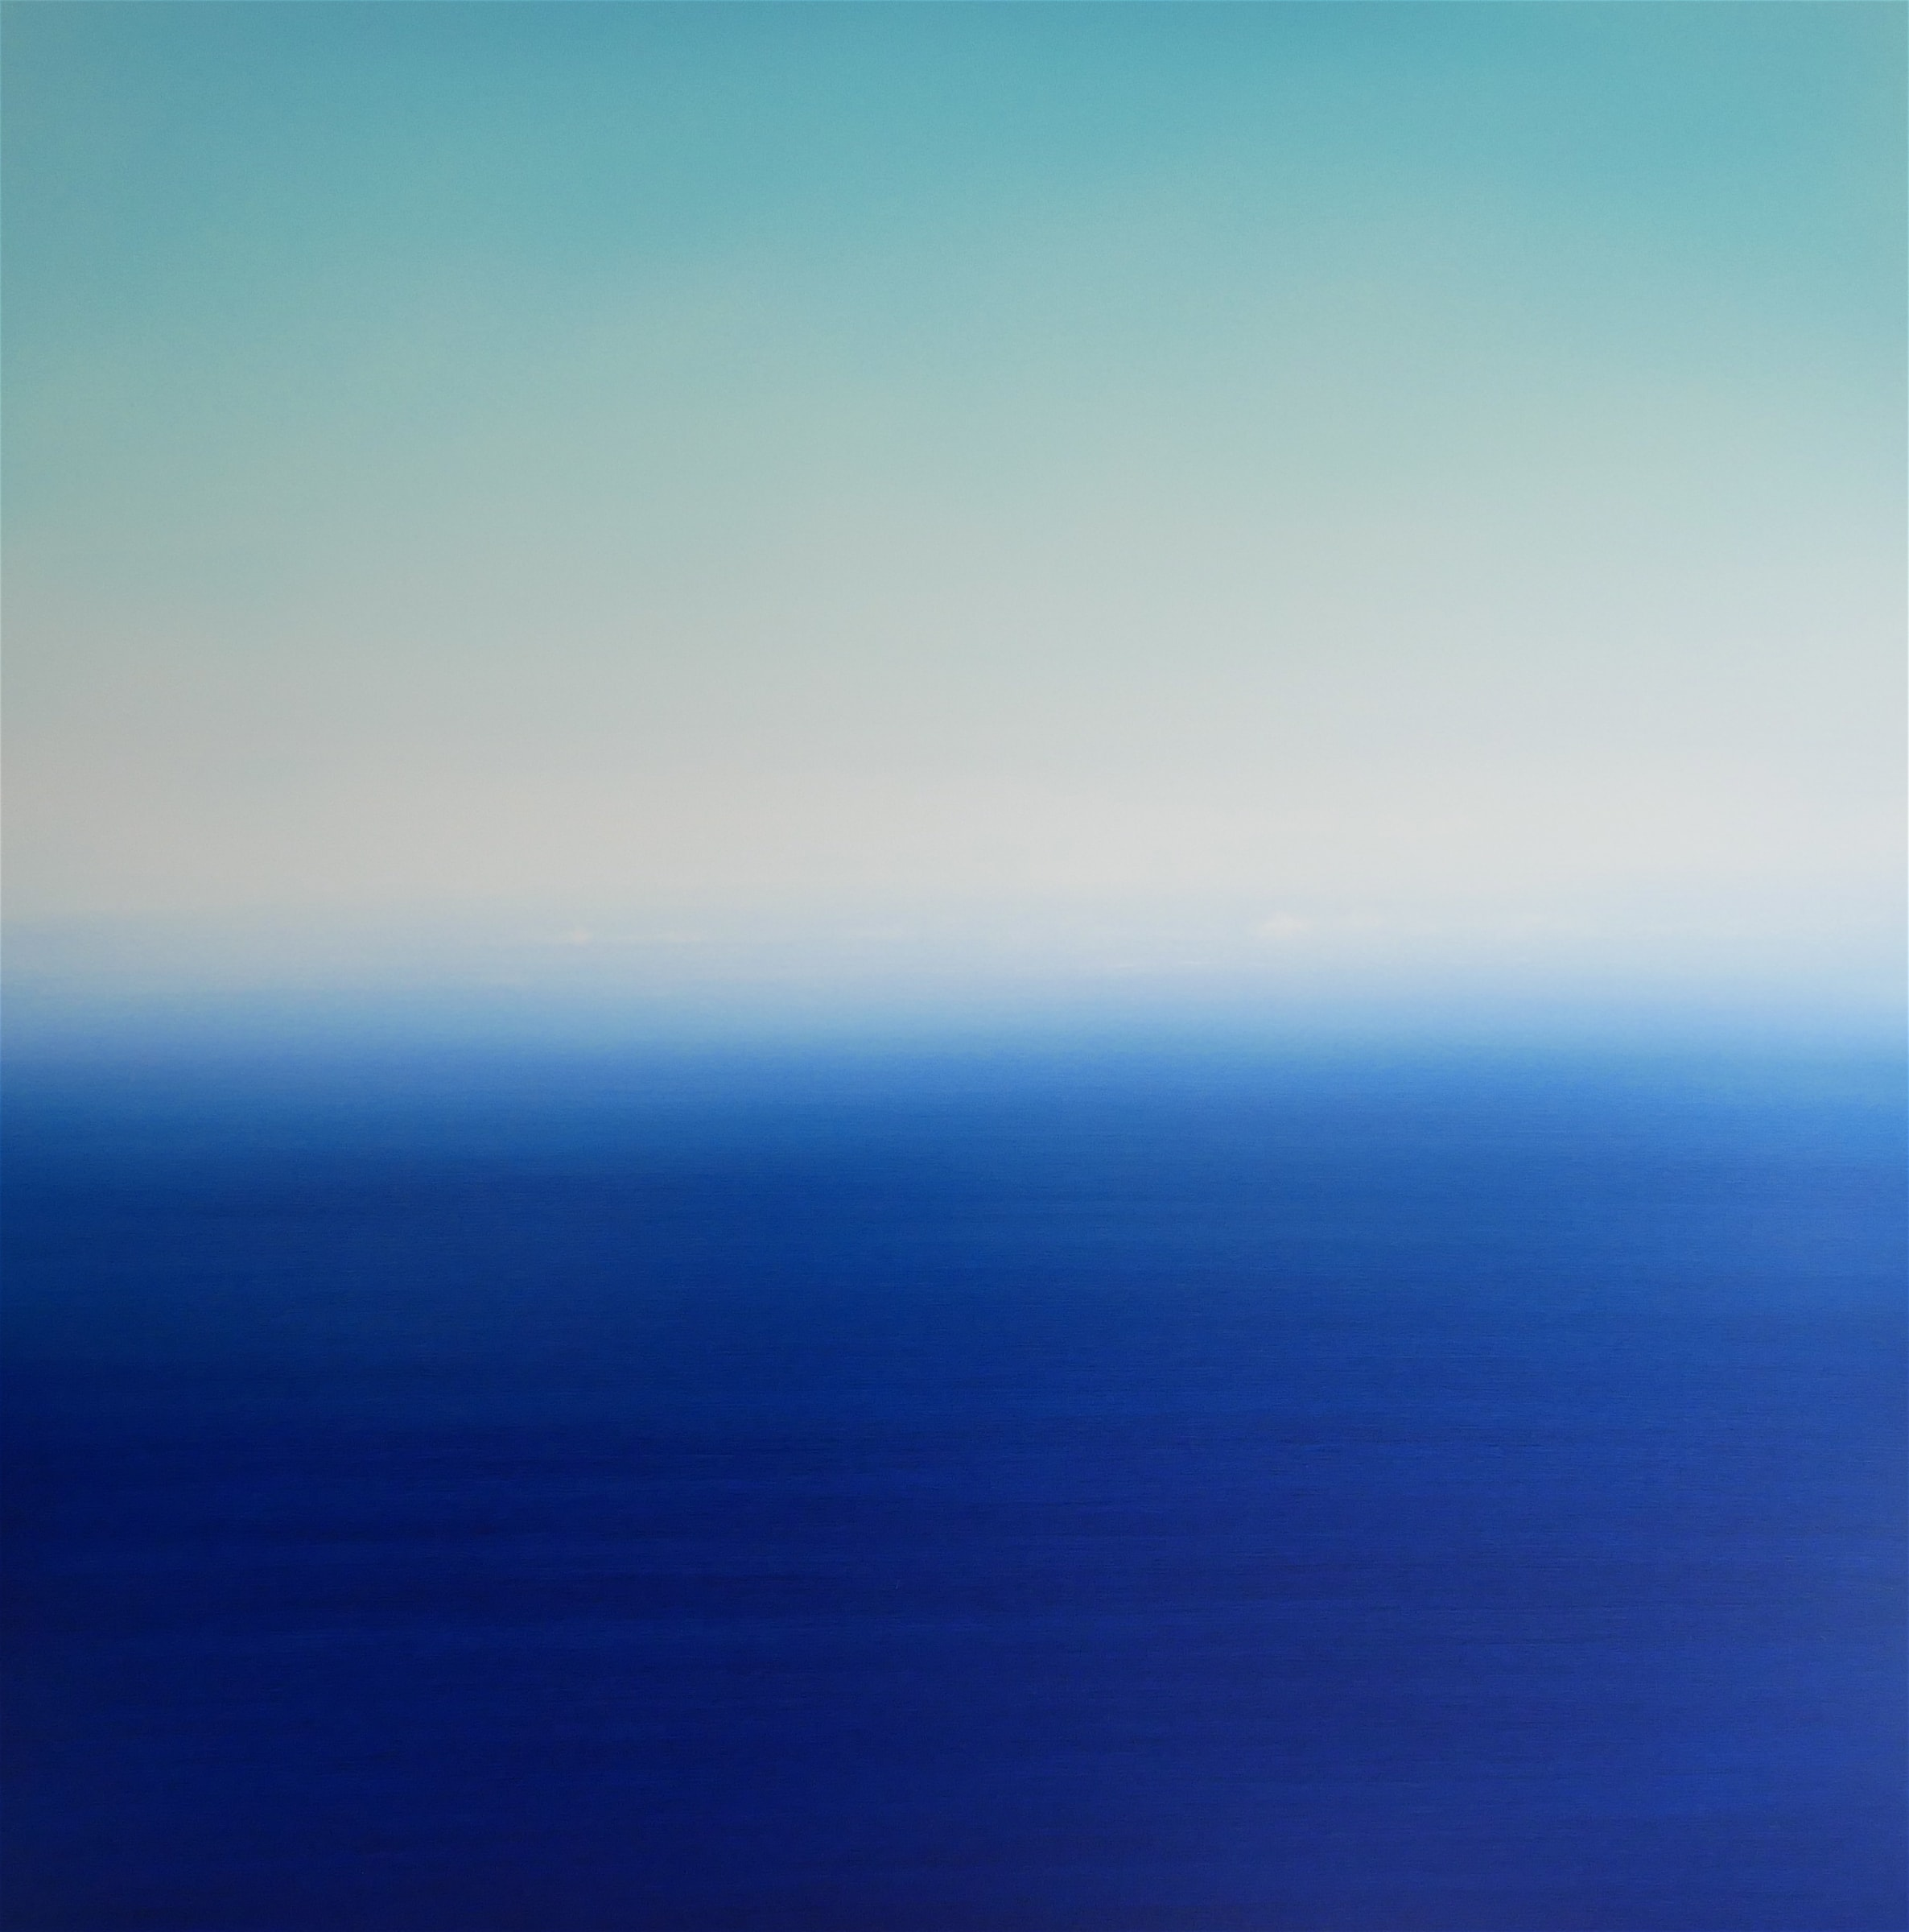 """<span class=""""link fancybox-details-link""""><a href=""""/artists/78-martyn-perryman/works/6290-martyn-perryman-atlantic-haze-st-ives-2021/"""">View Detail Page</a></span><div class=""""artist""""><strong>Martyn Perryman</strong></div> b. 1963 <div class=""""title""""><em>Atlantic Haze, St Ives</em>, 2021</div> <div class=""""signed_and_dated"""">signed on the reverse</div> <div class=""""medium"""">oil on canvas</div> <div class=""""dimensions"""">120 x 120cm</div><div class=""""copyright_line"""">Own Art, £165 x 10 months, 0% APR</div>"""